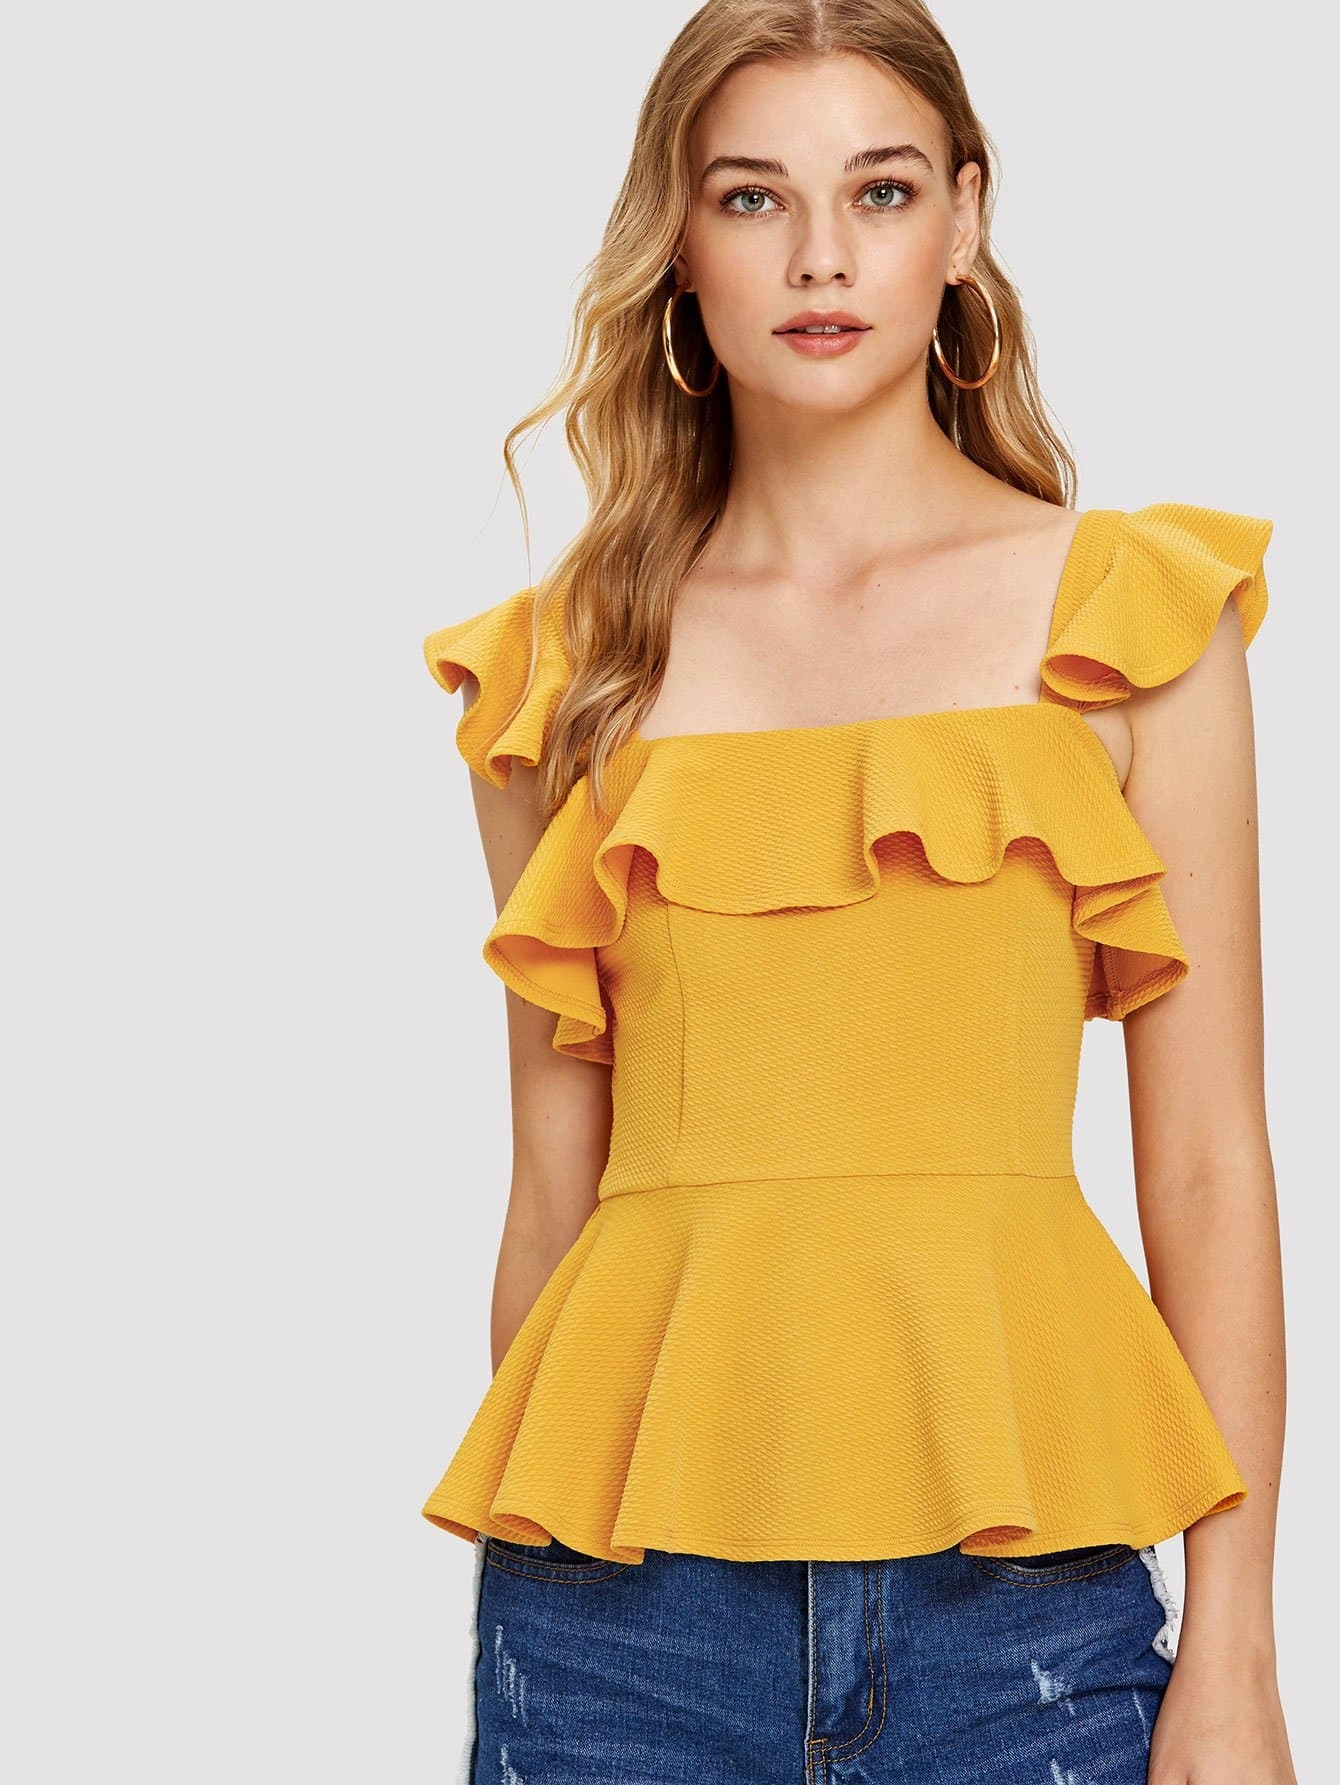 Ruffle Trim Foldover Front Top